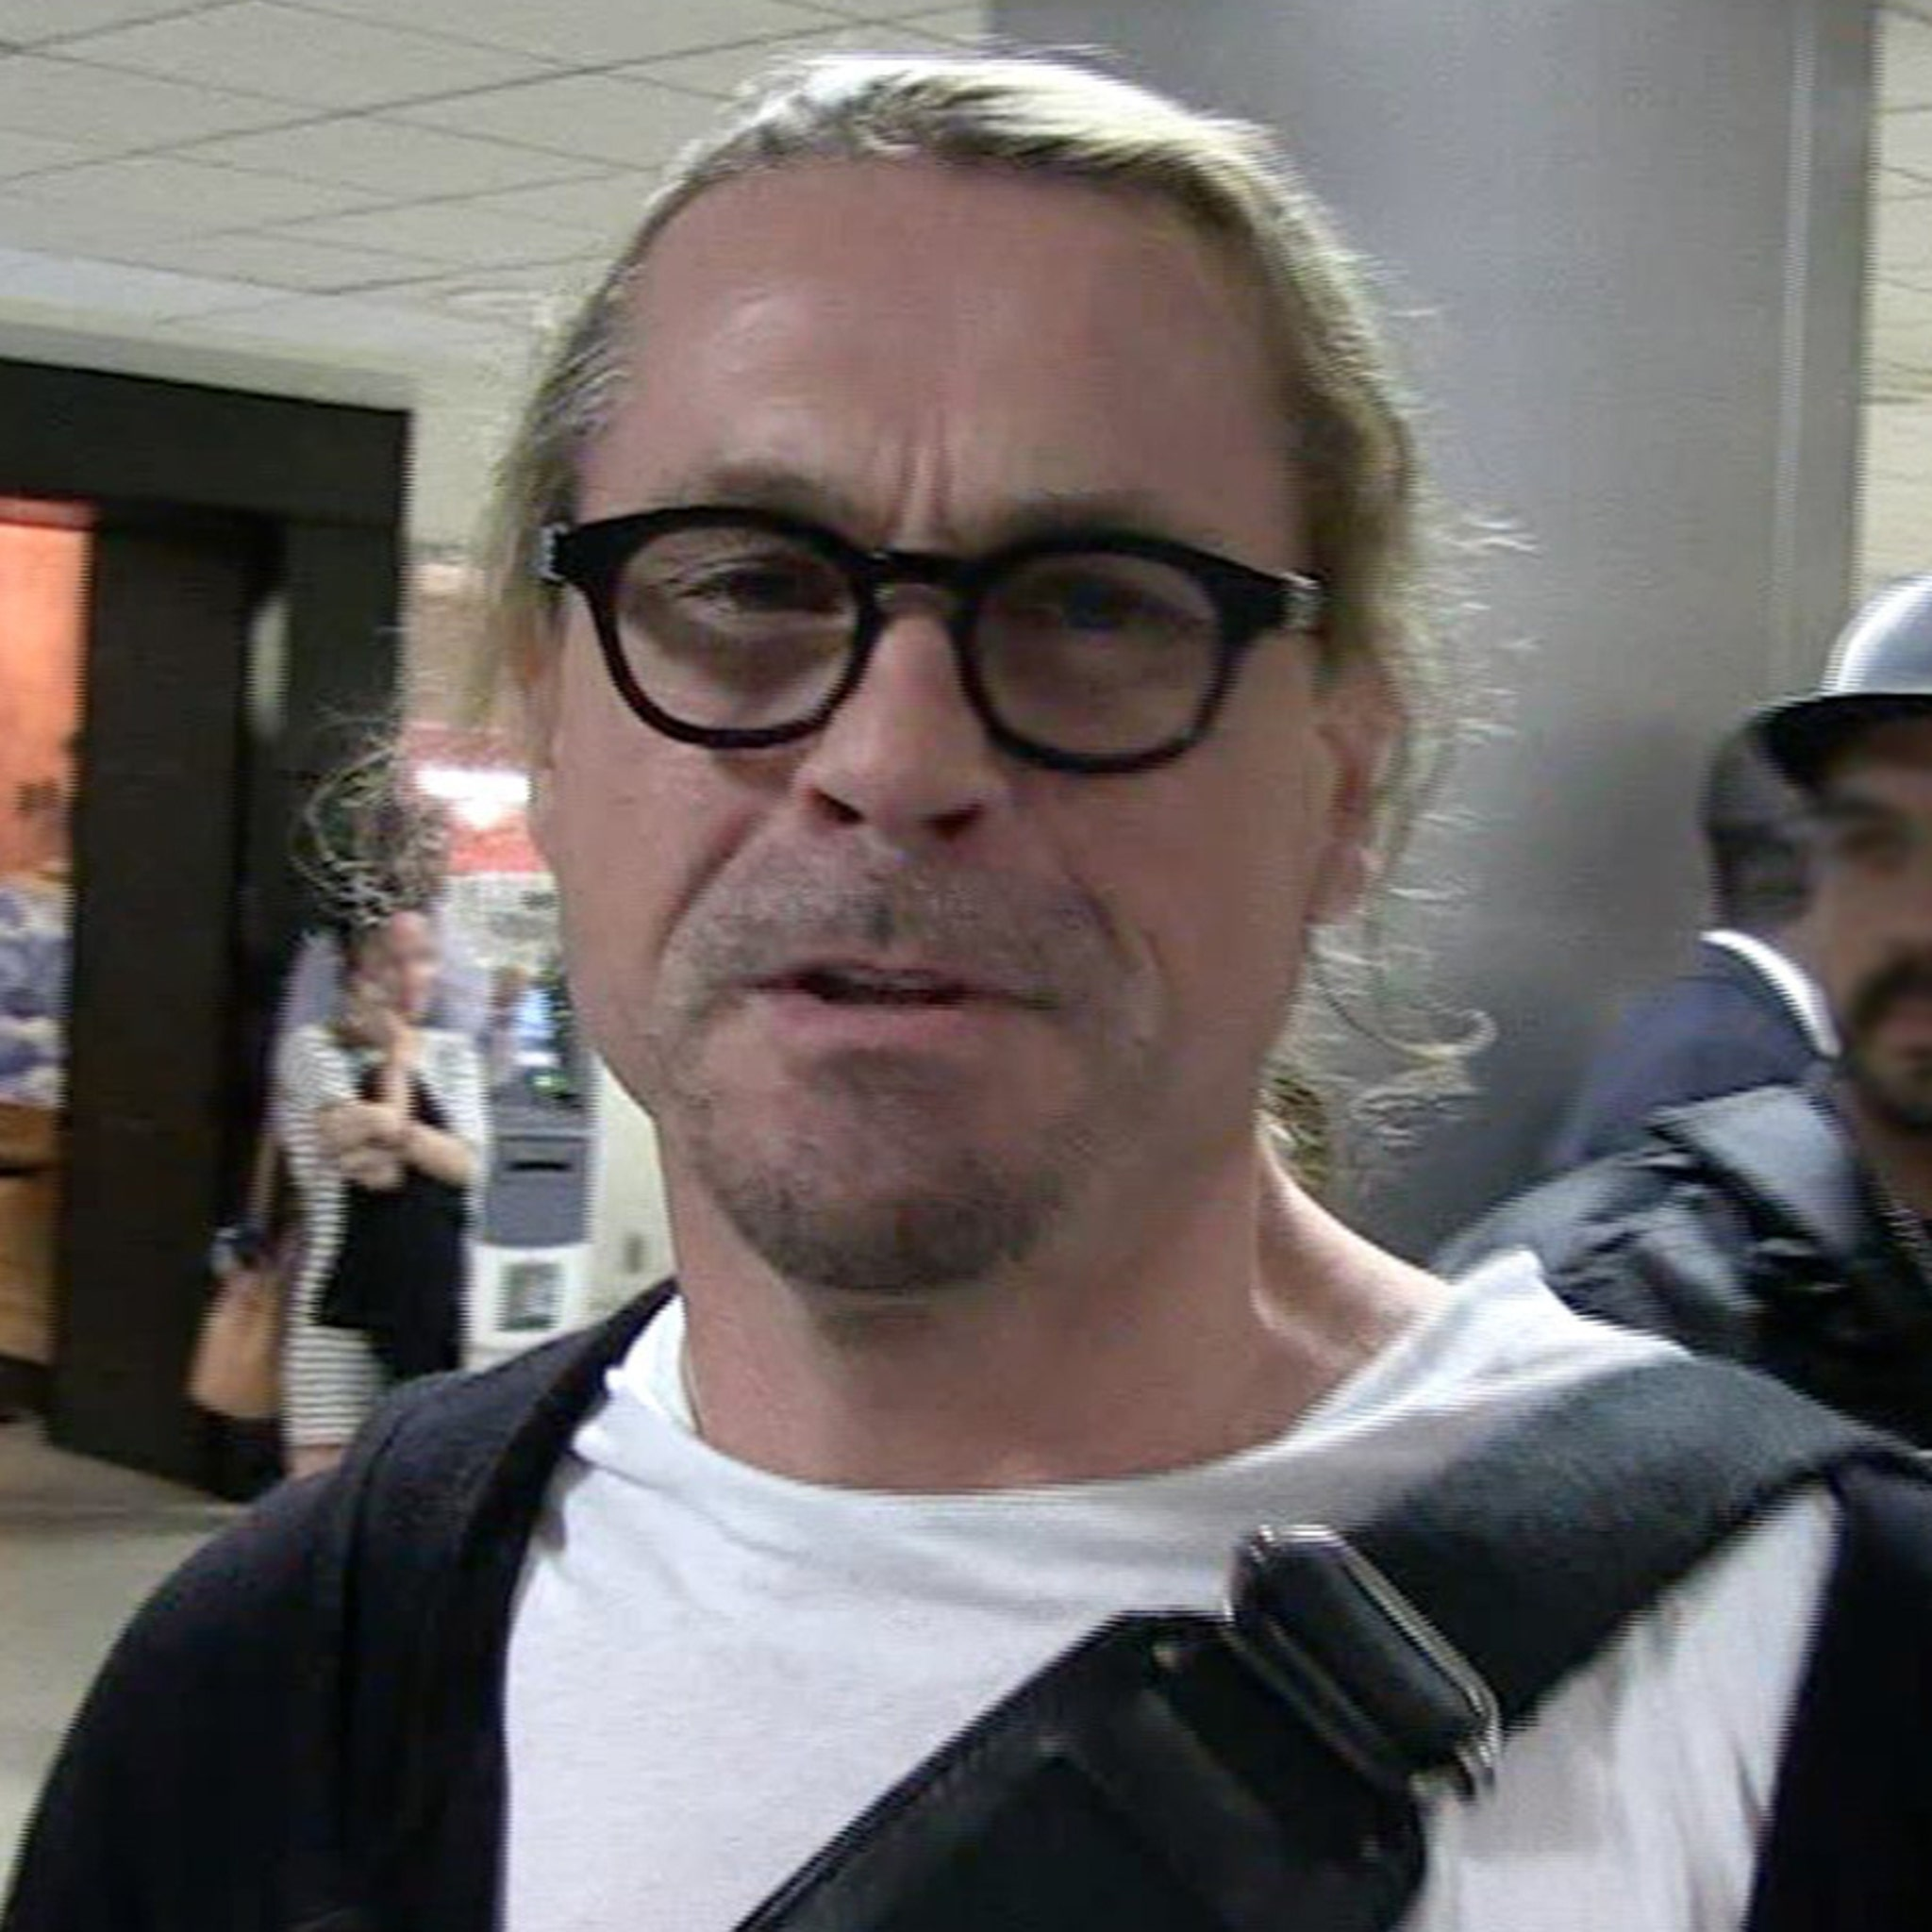 'Sons of Anarchy' Creator Kurt Sutter Says FX Fired Him for Being 'Abrasive Dick'